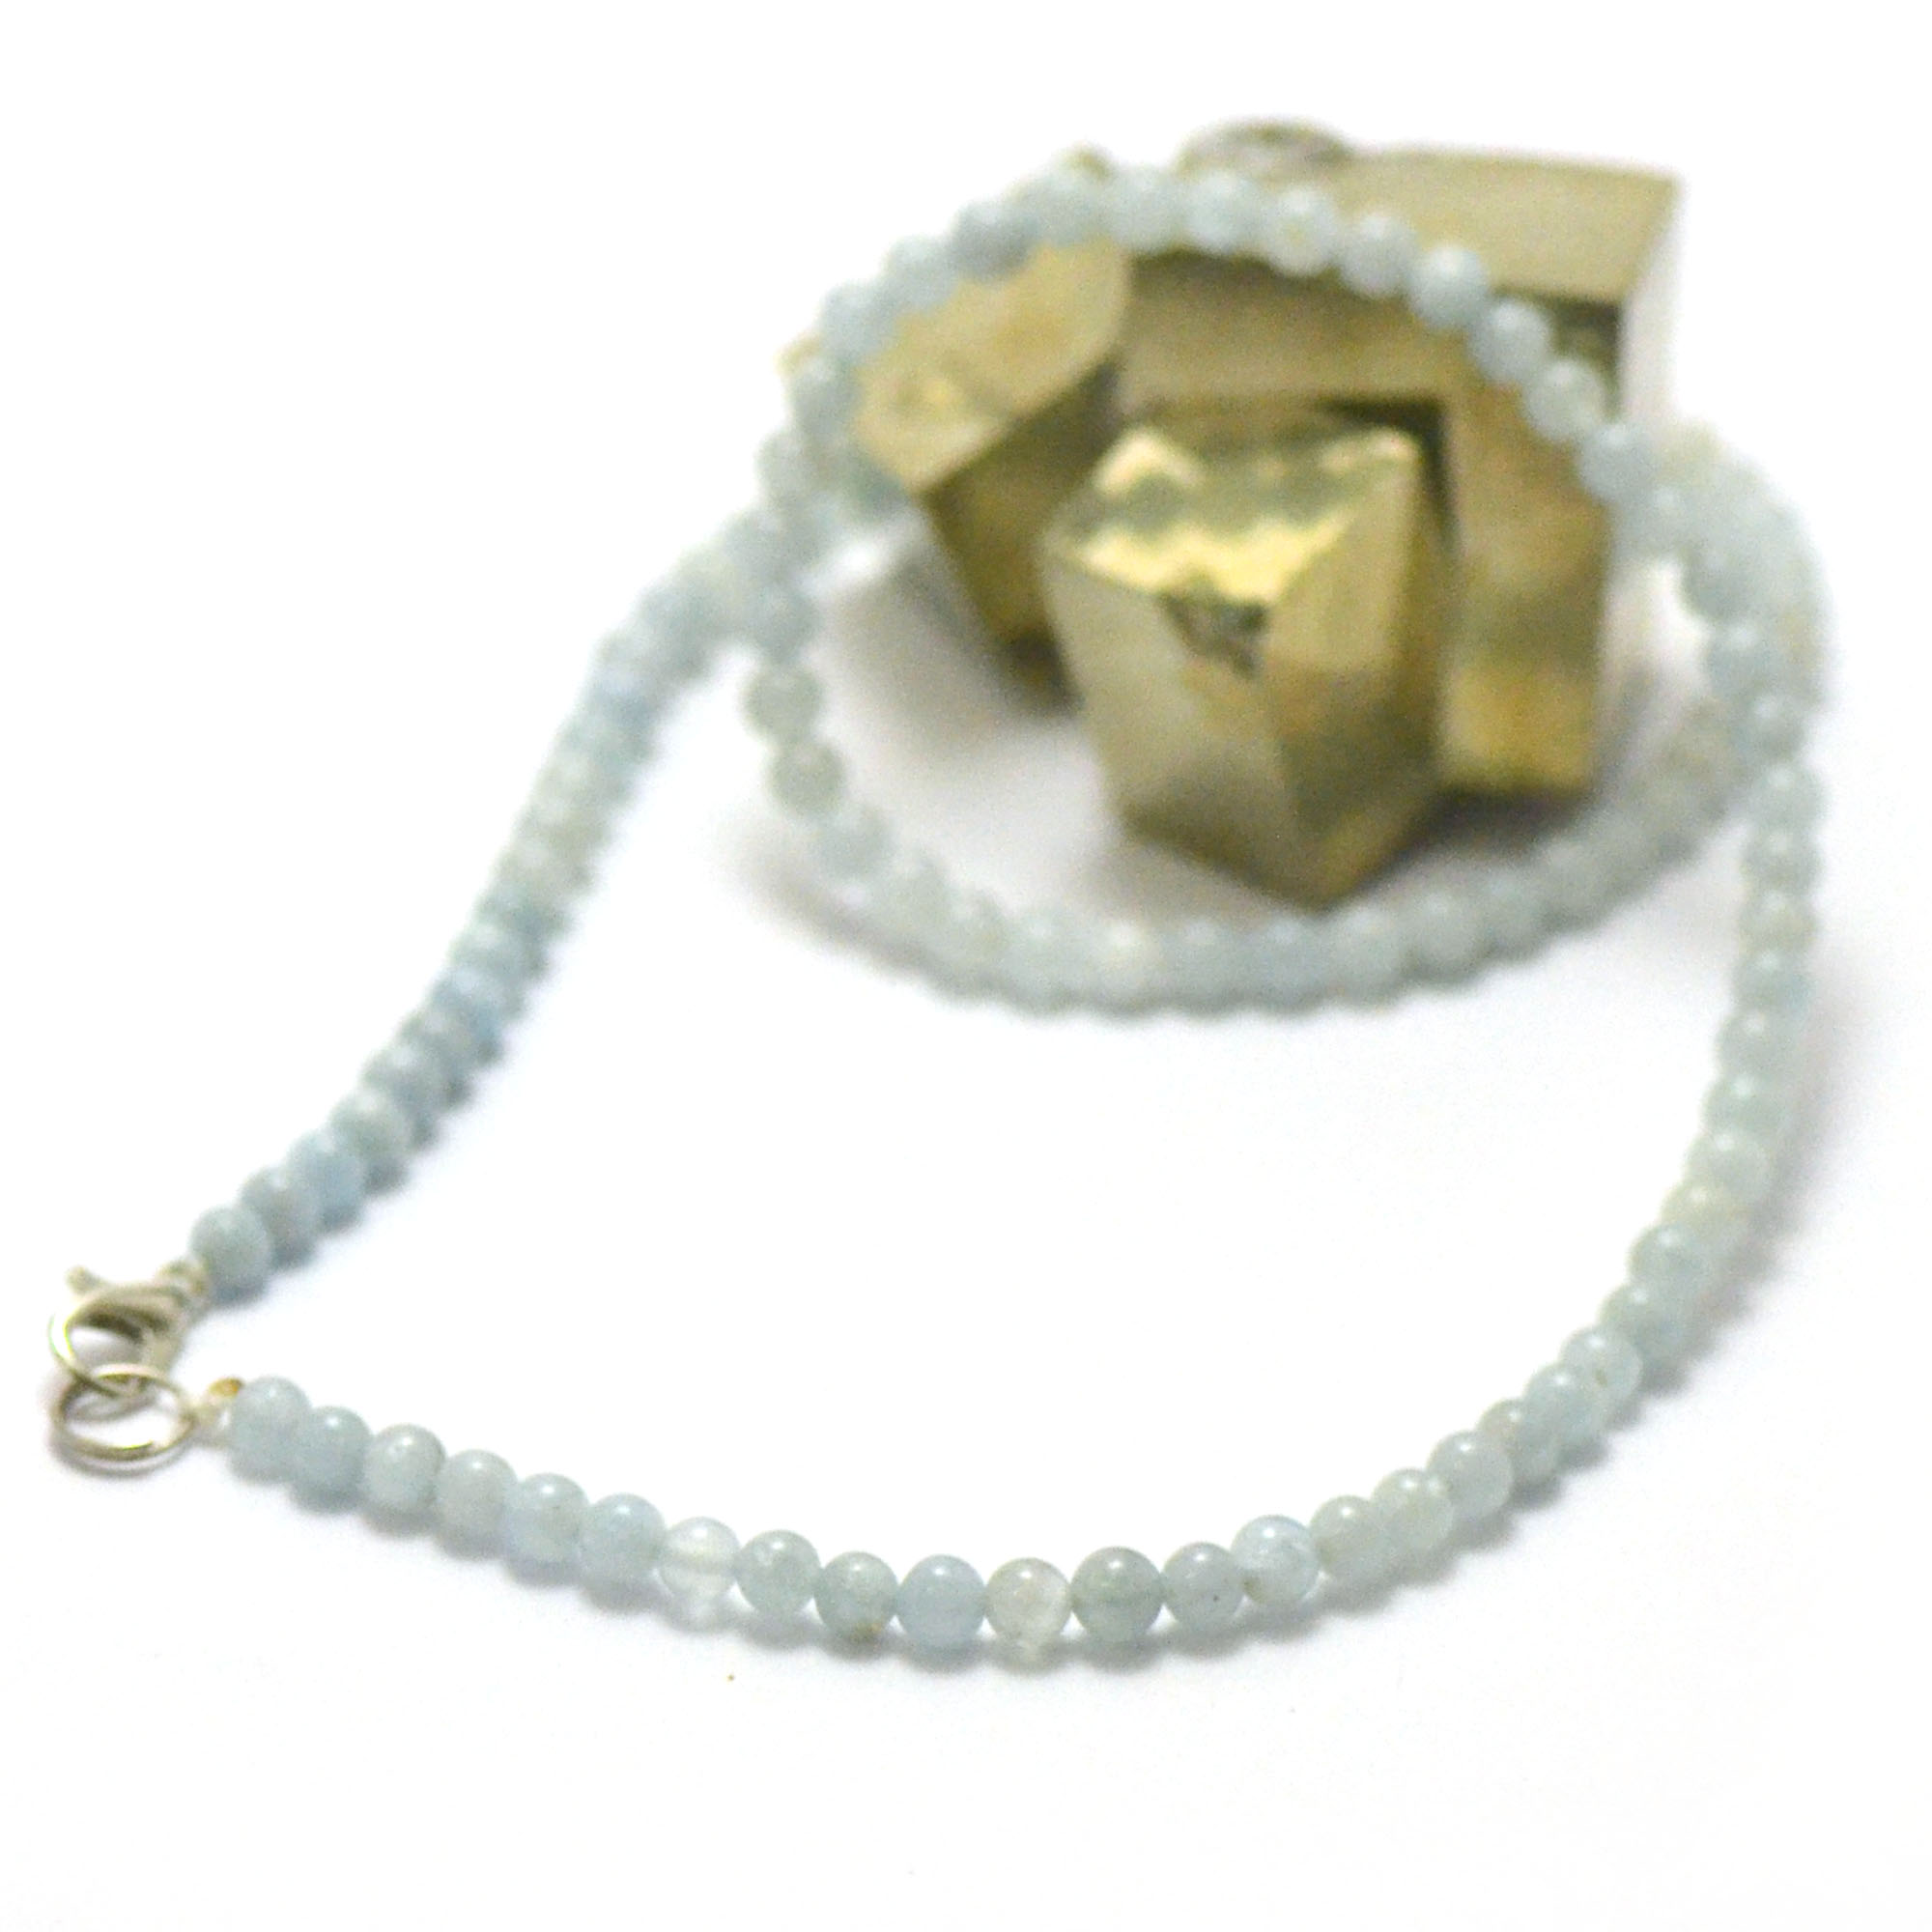 Collier d\' Aigue marine, perle ronde 4 mm